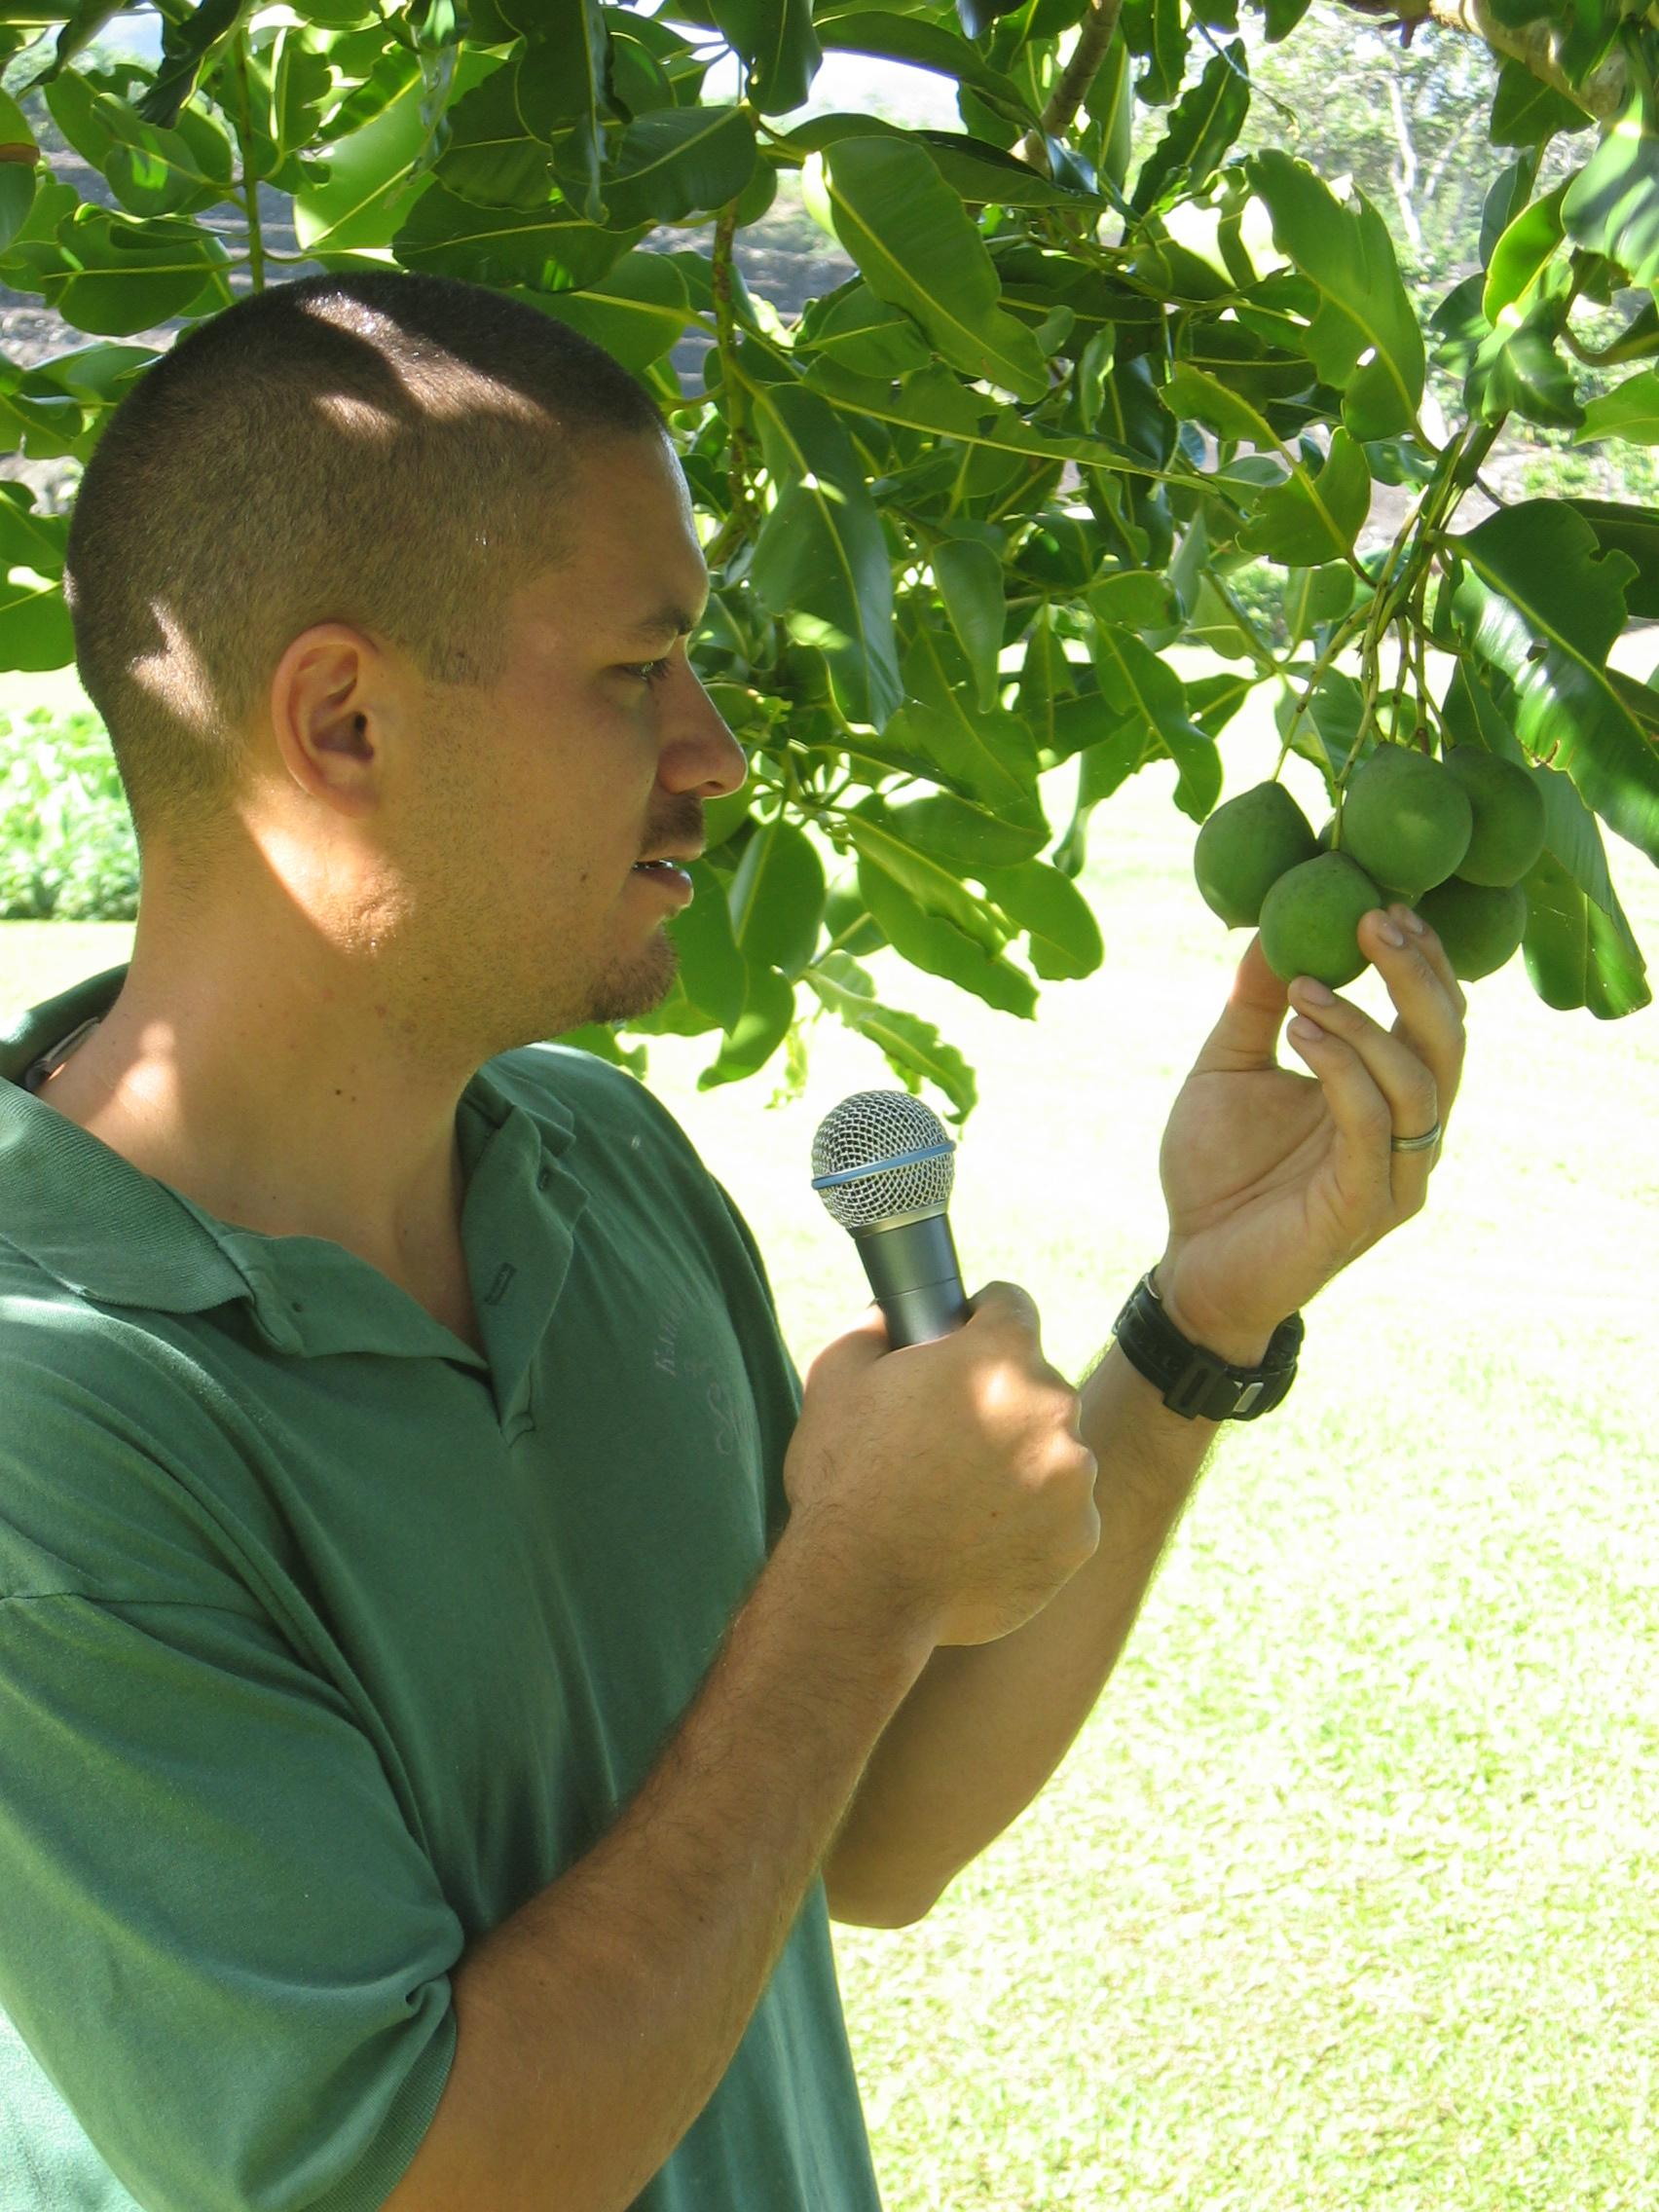 Calophyllum inophyllum   - Kamaui Aiona, Director of the Kahanu Garden of the NTBG speaking about Calophyllum inophyllum